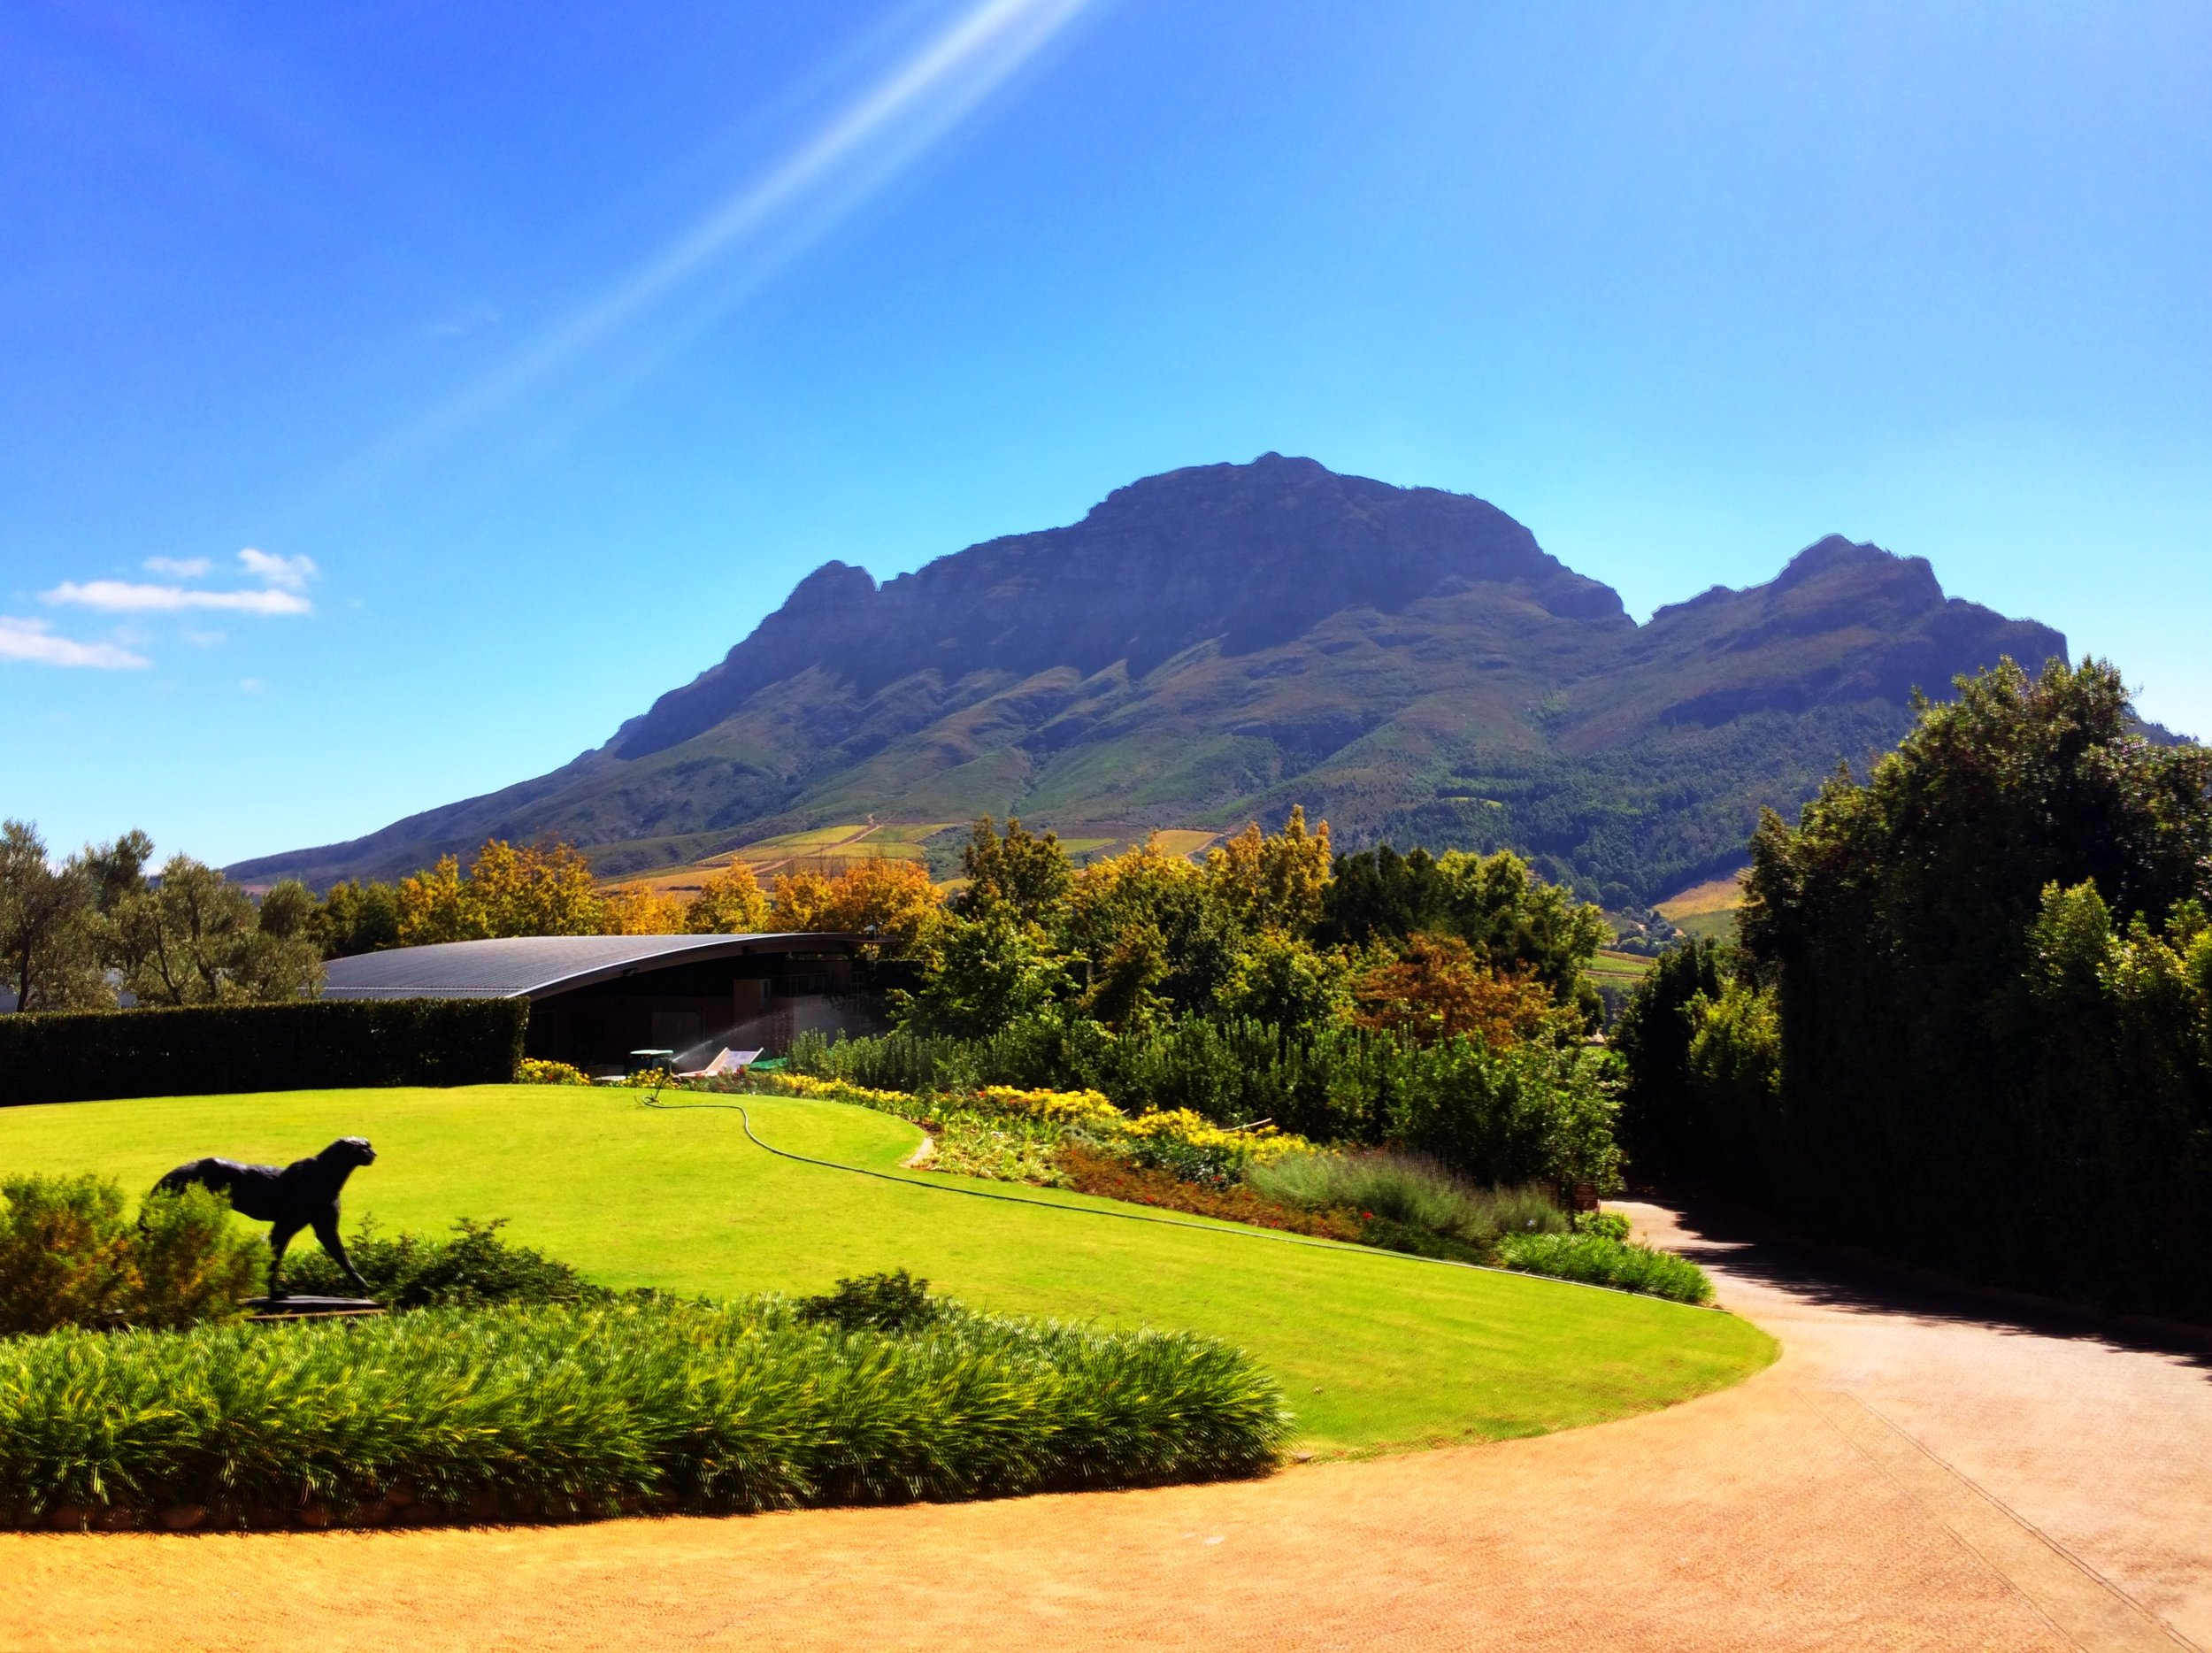 Delaire Graff Estate, a winery and boutique hotel near Cape Town. Beautify but, yeesh - horrible customer service!